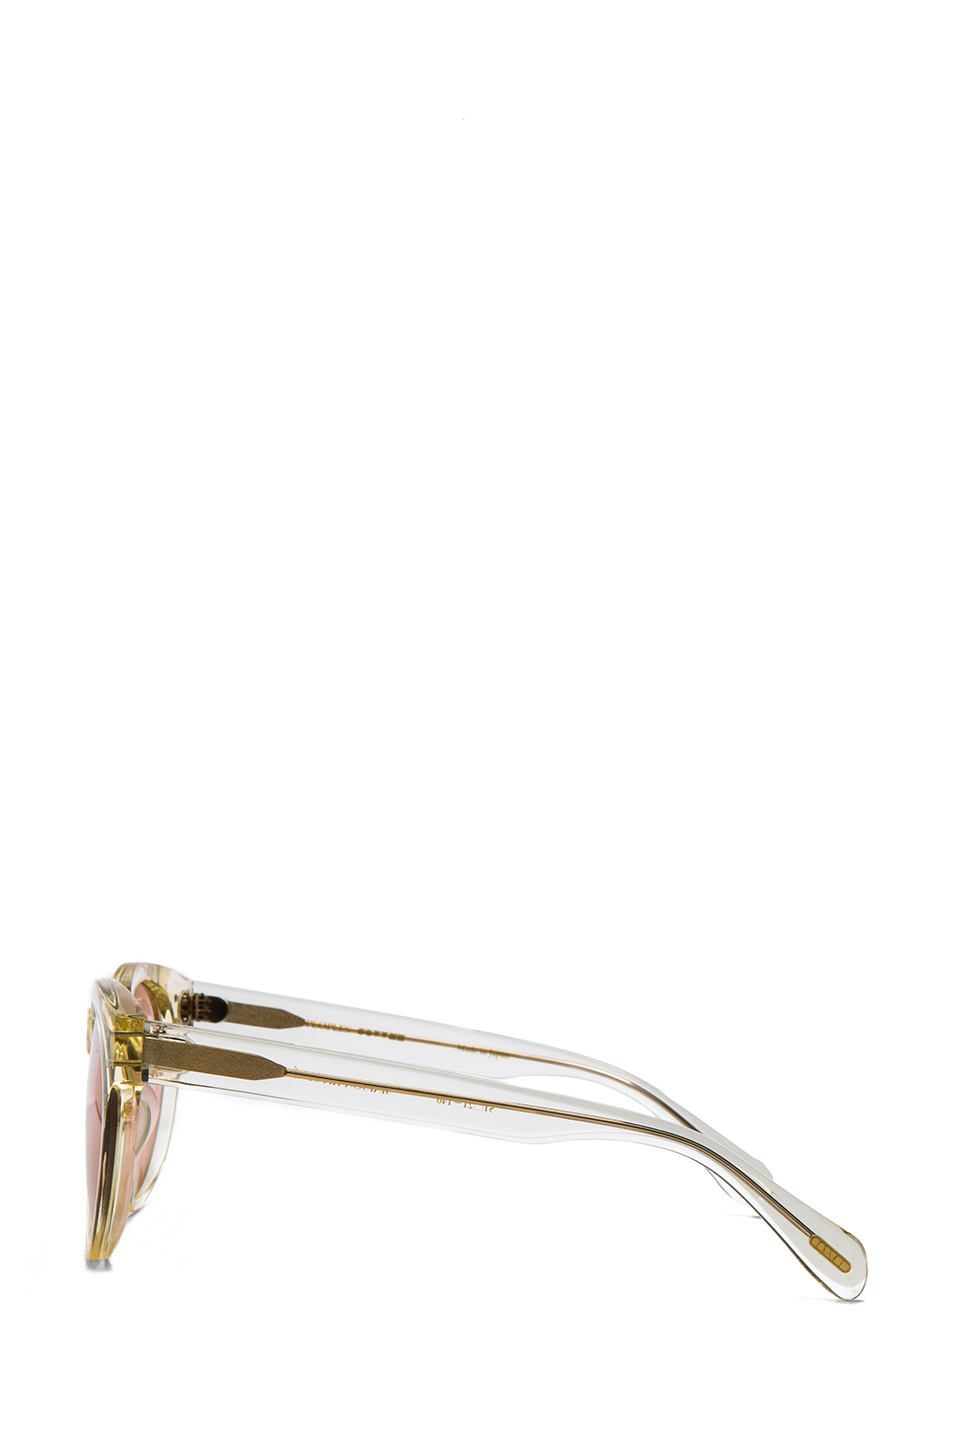 Oliver Peoples|for Maison Kitsune Paris Sunglasses in Buff